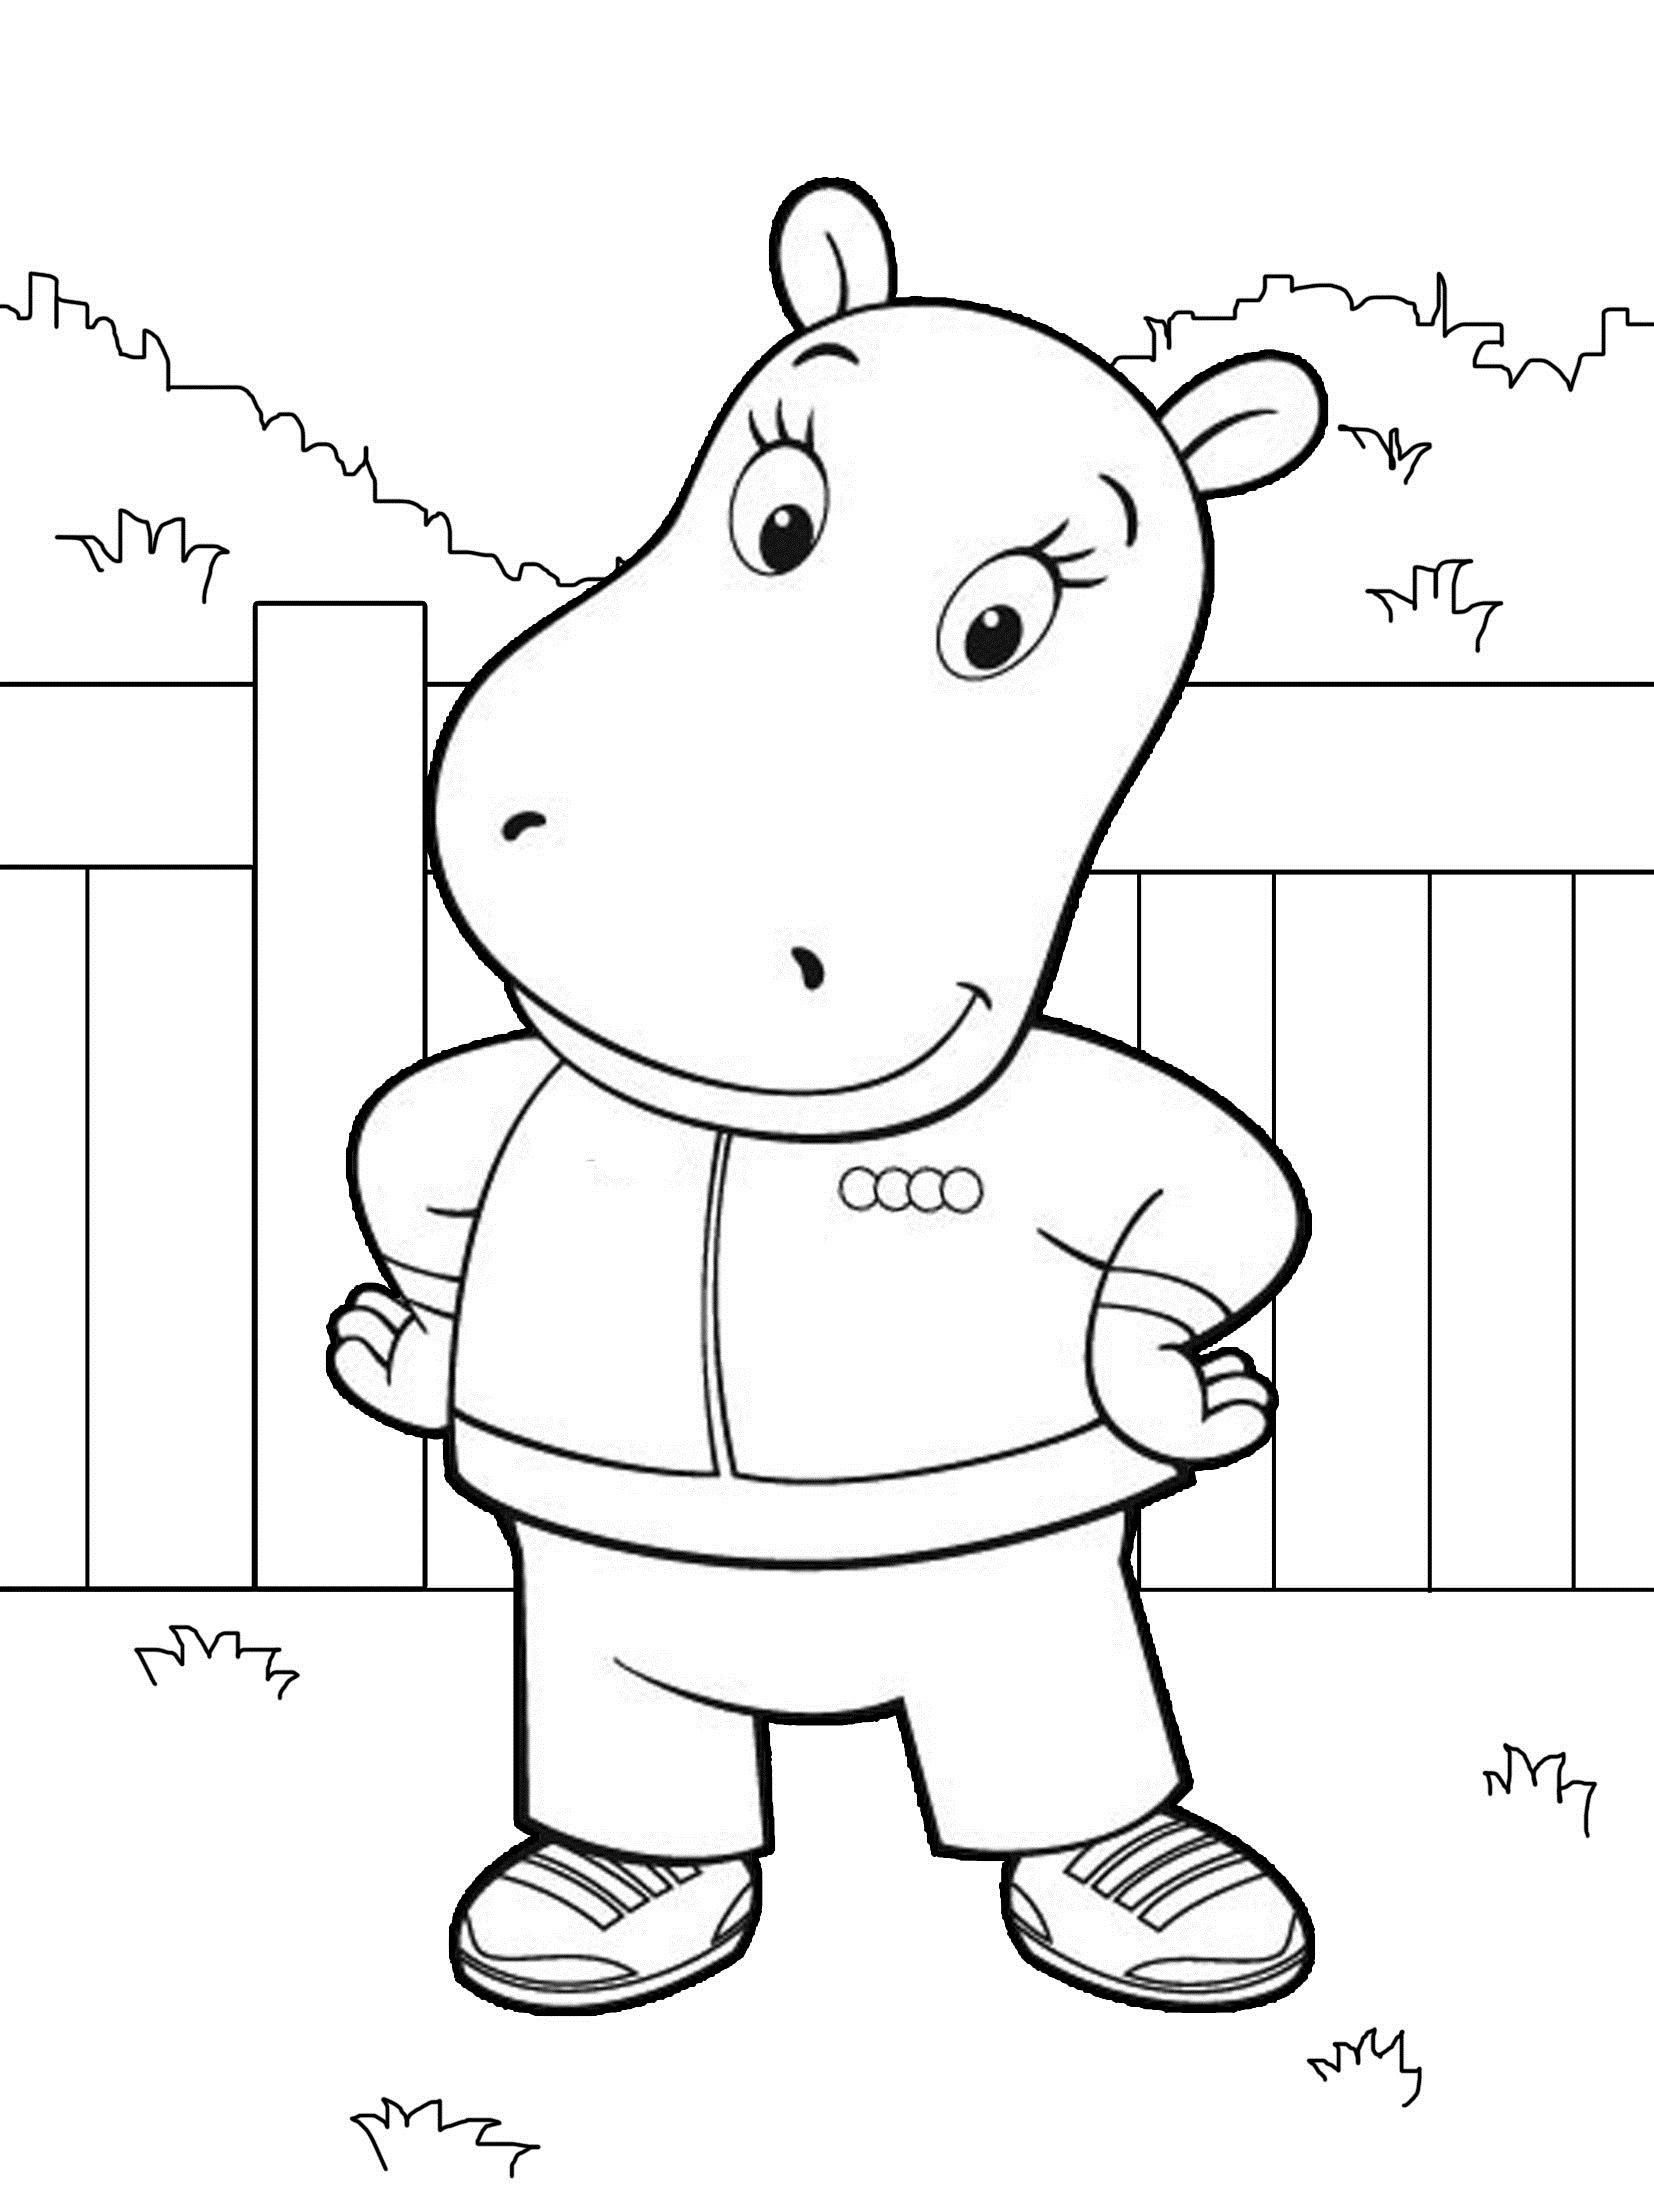 Backyardigans colouring pages free murderthestout for Free backyardigans coloring pages